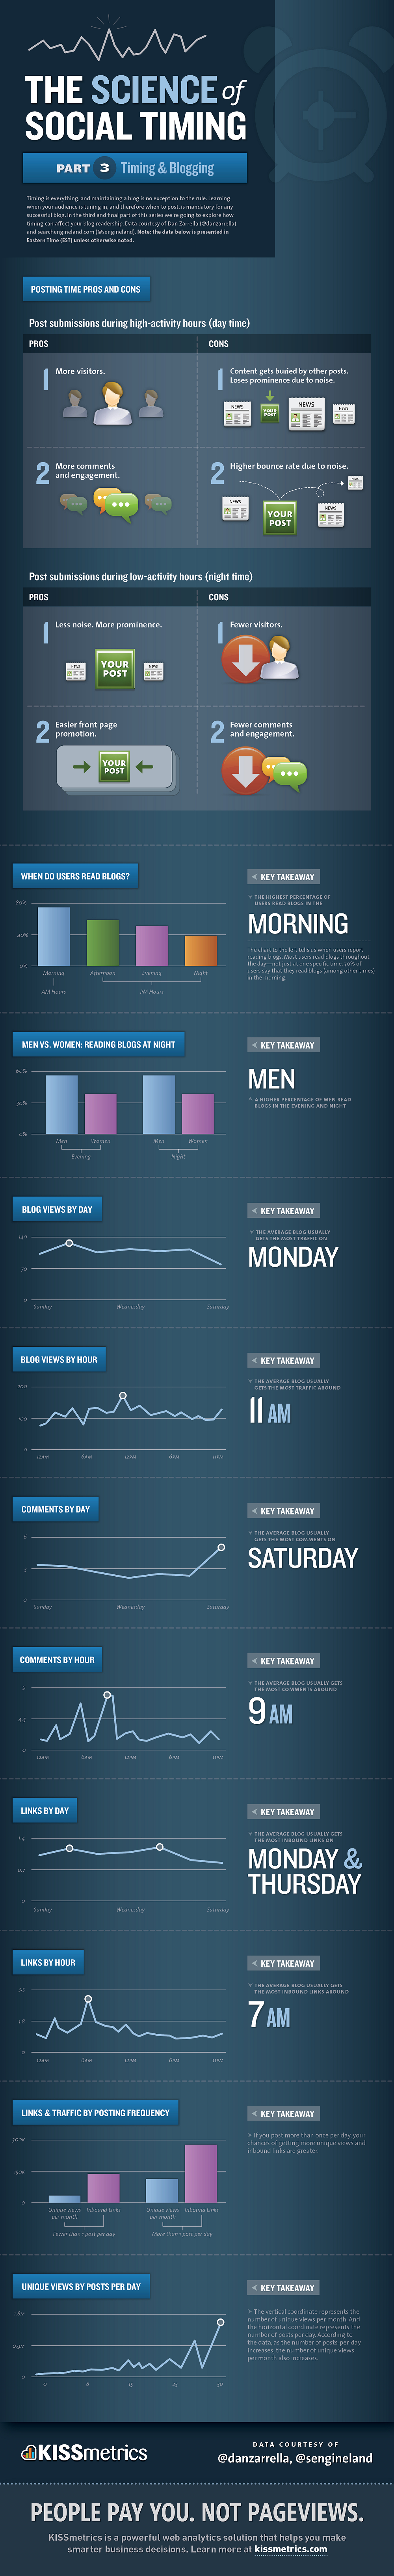 The-Science-Of-Social-Timing-In-Blogging-infographic